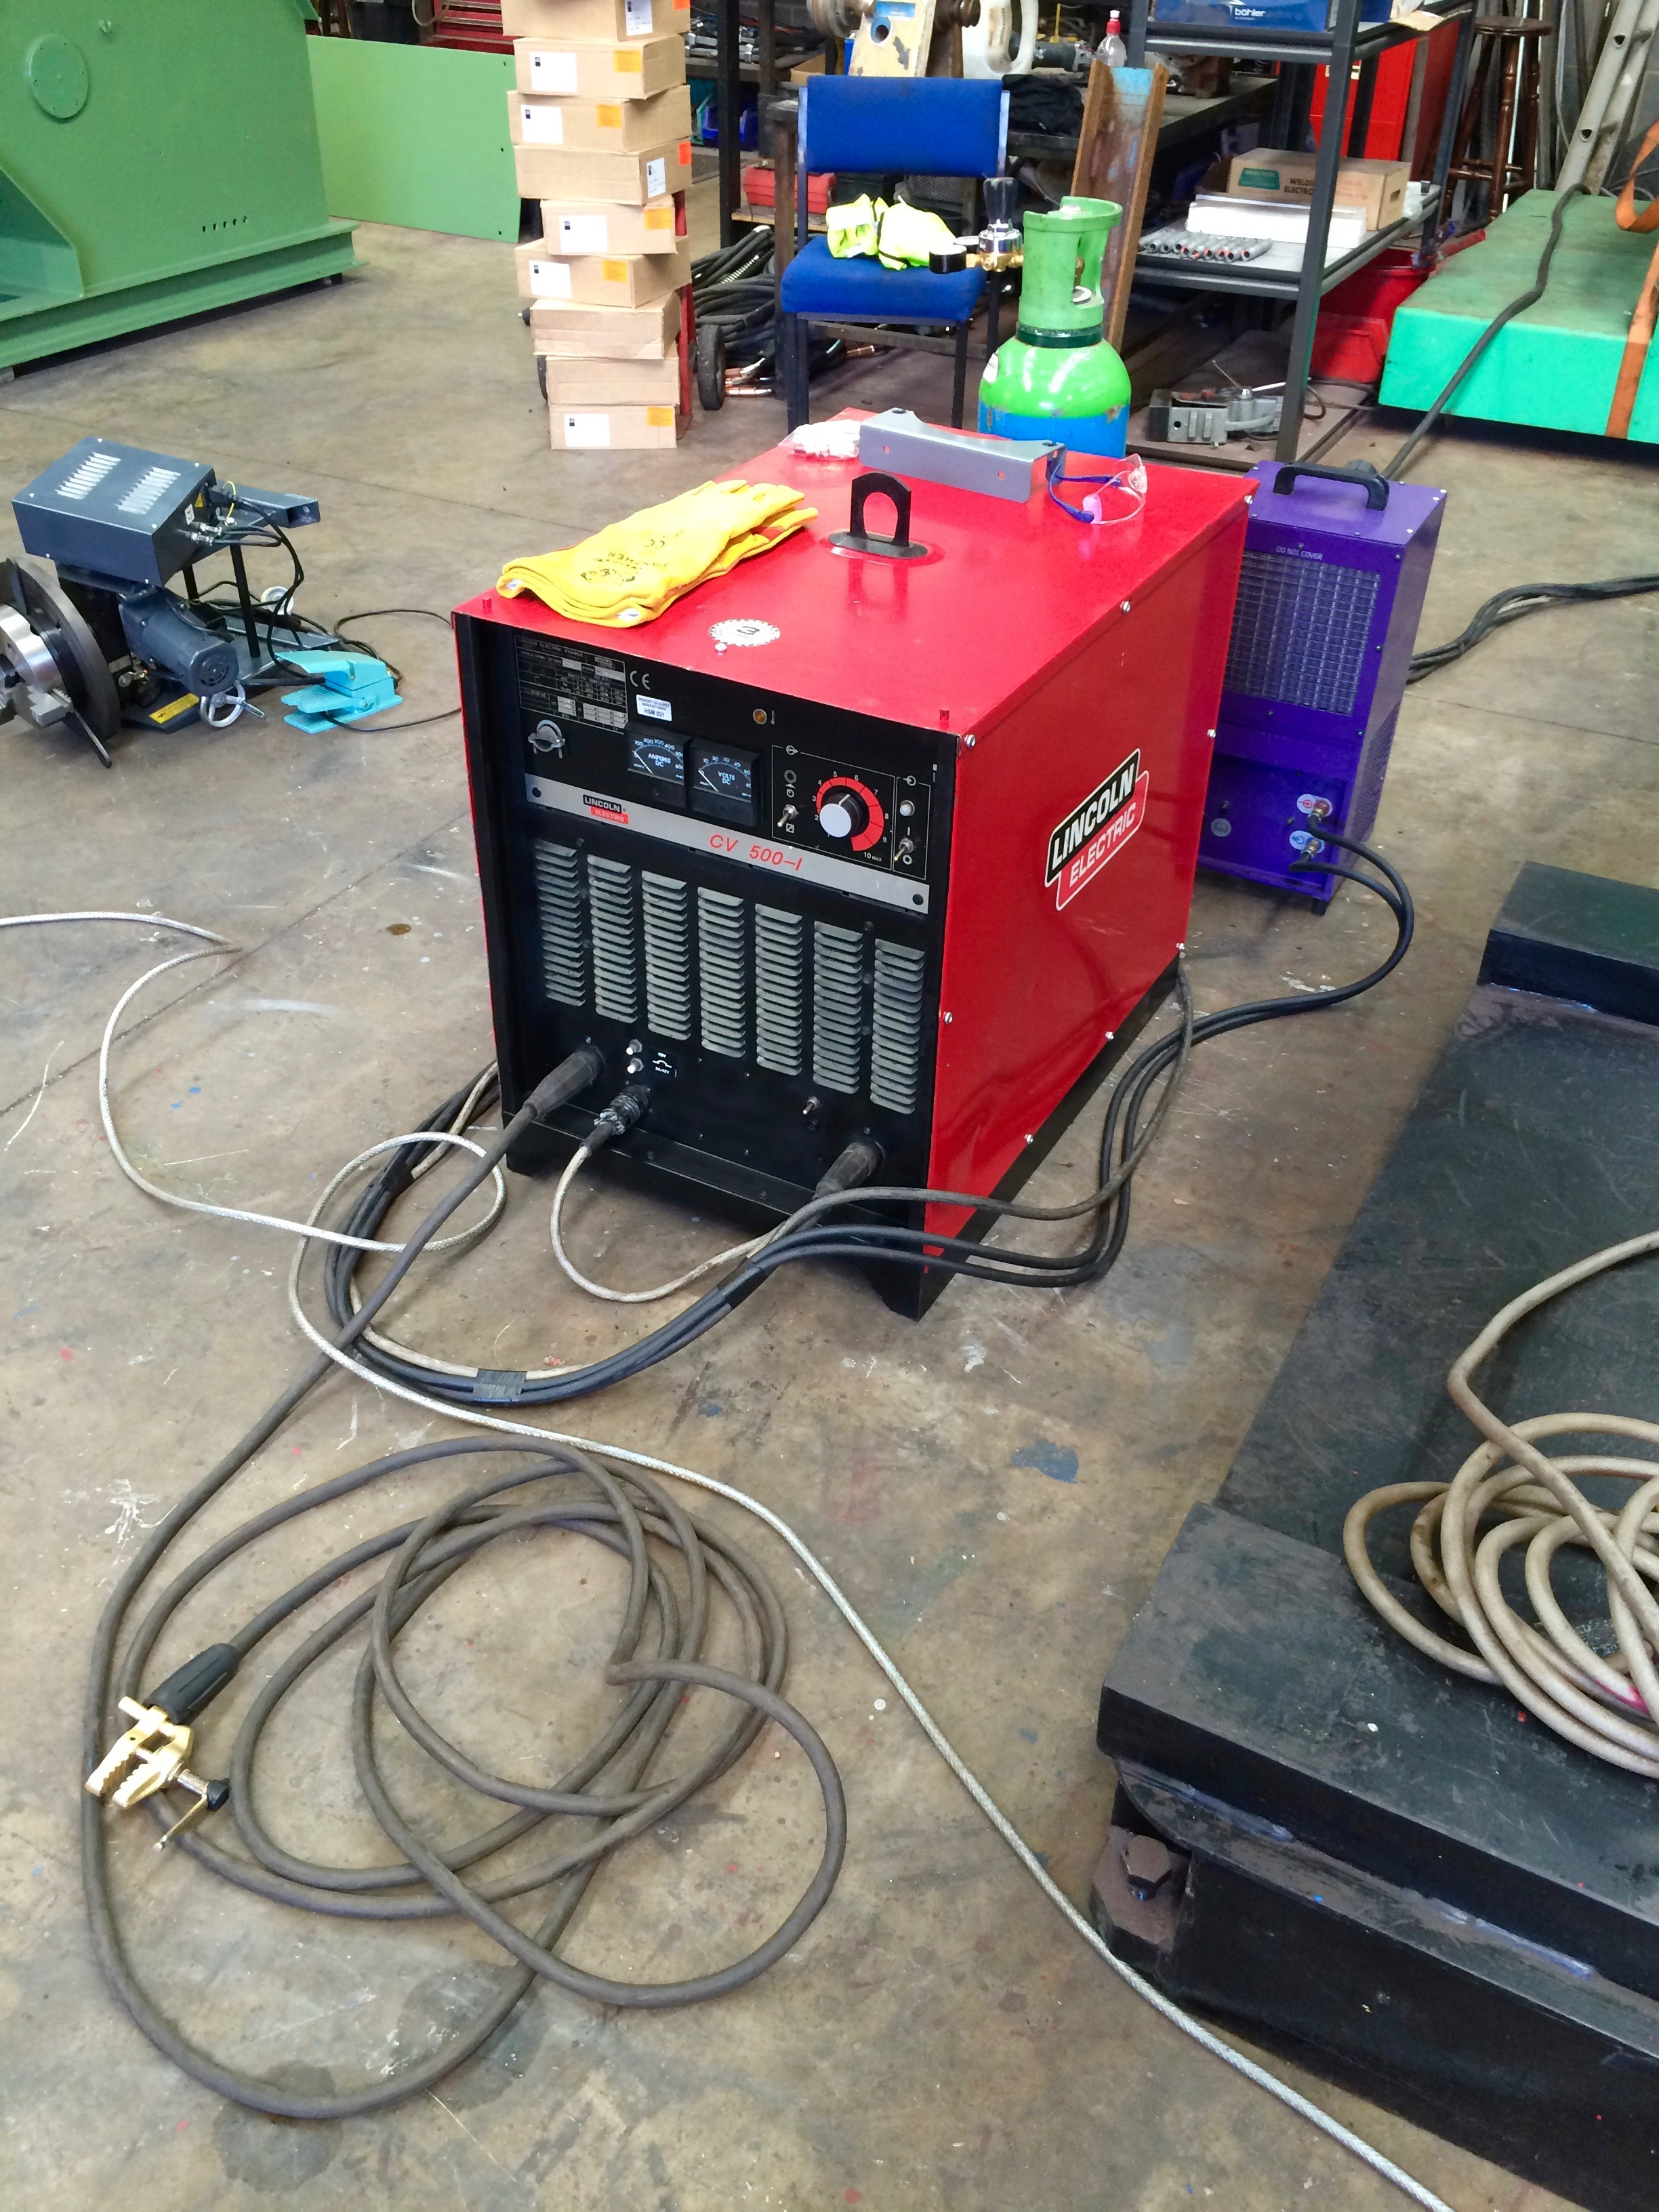 electric machine cv view cooled water x feeder with portfolio i welding and wire column lincoln welder coupled boom mig feed package manipulator bode automated for